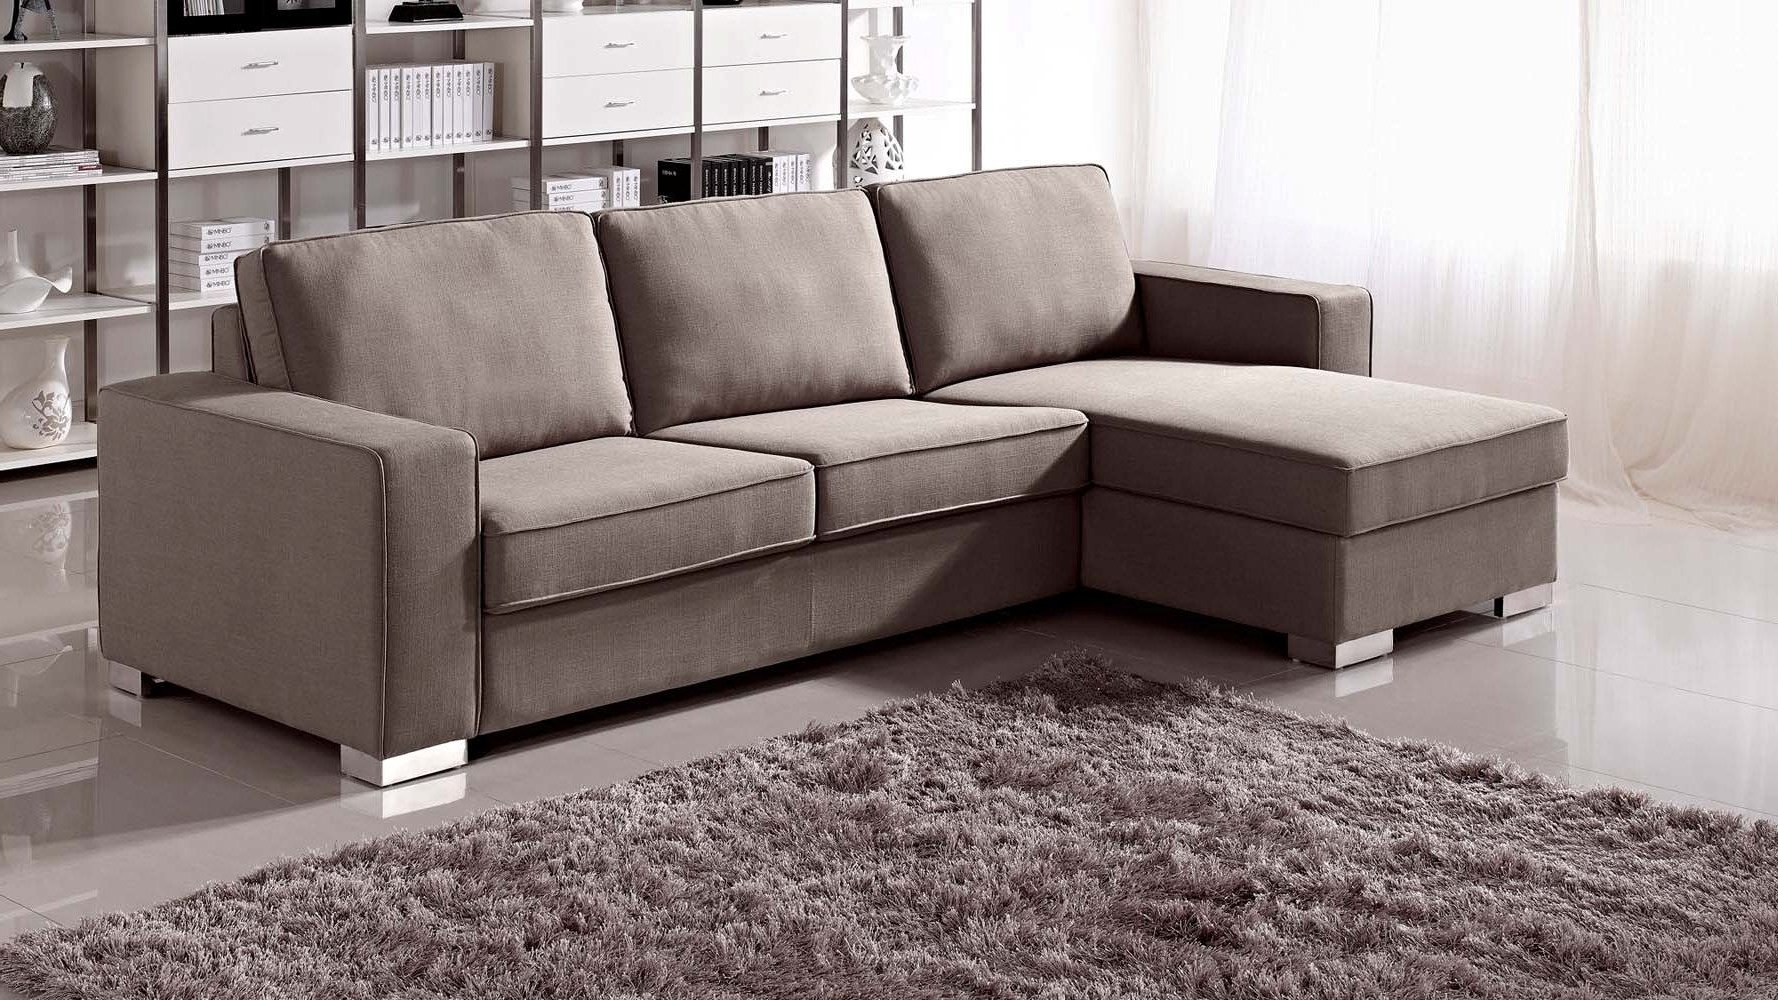 Best And Newest Adjustable Sectional Sofas With Queen Bed In Sectional Sofa With Sleeper And Chaise (View 2 of 15)